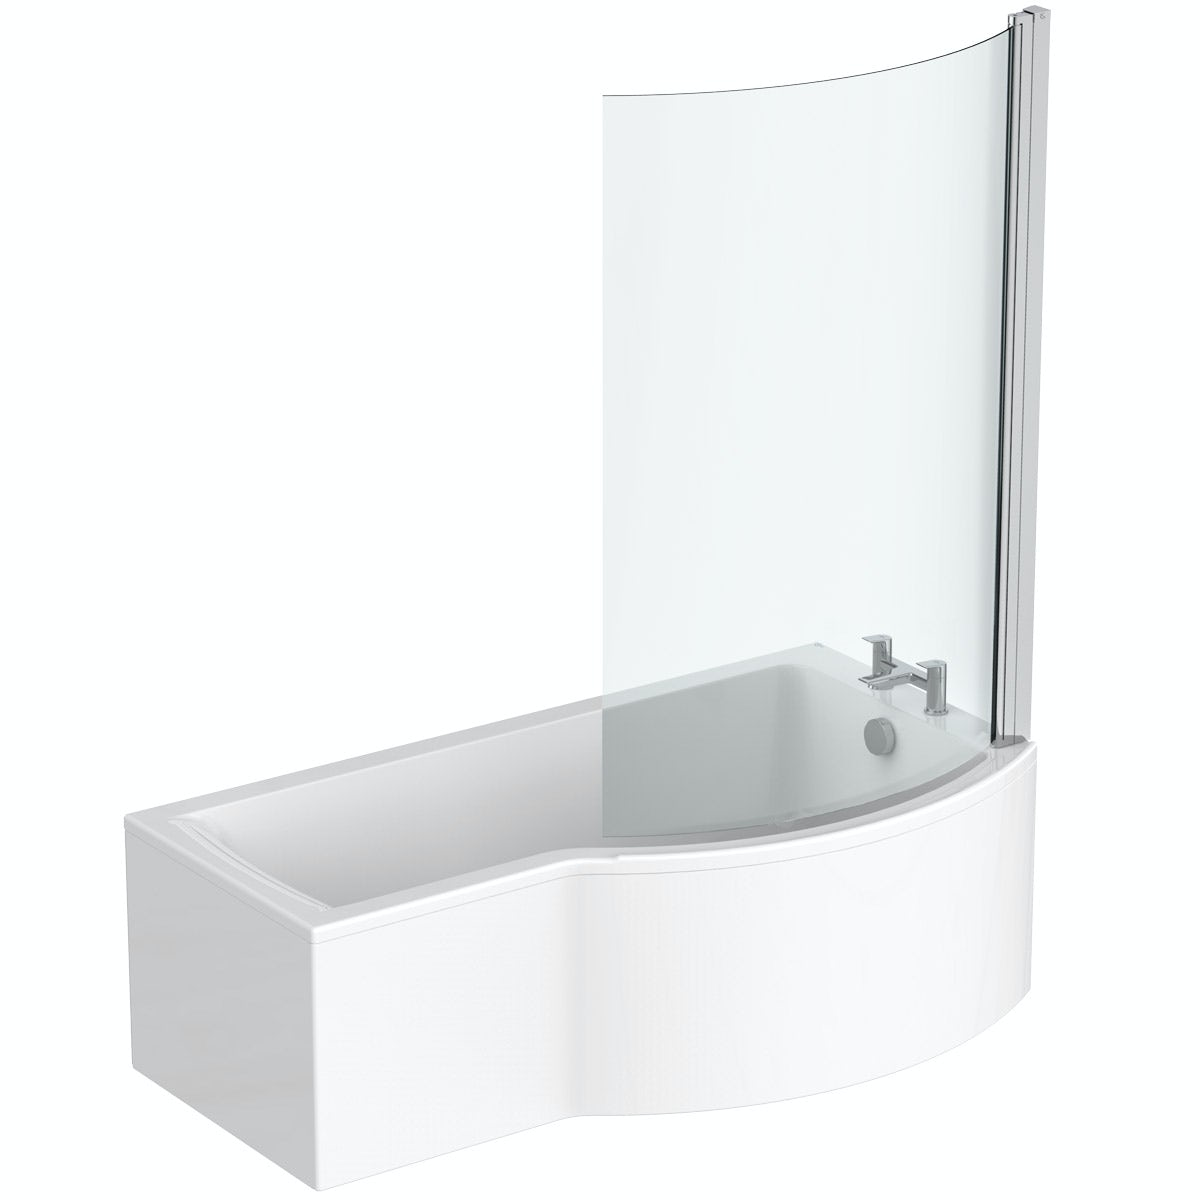 Ideal Standard Concept Air Right Hand Shower Bath With